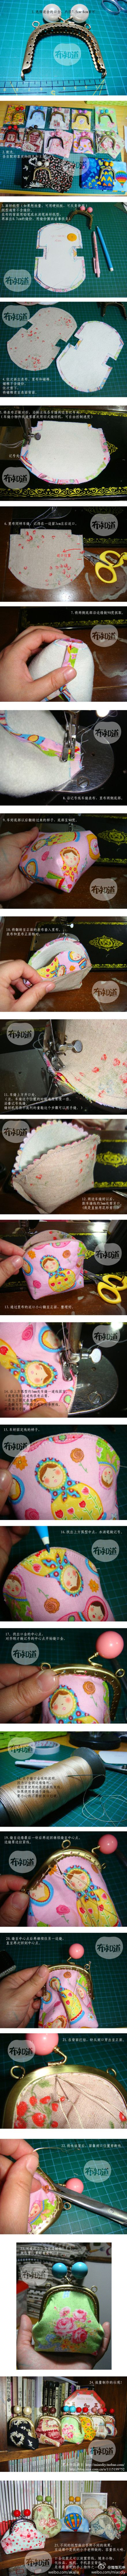 Always wanted to learn how to make a coin purse!  duitang.com